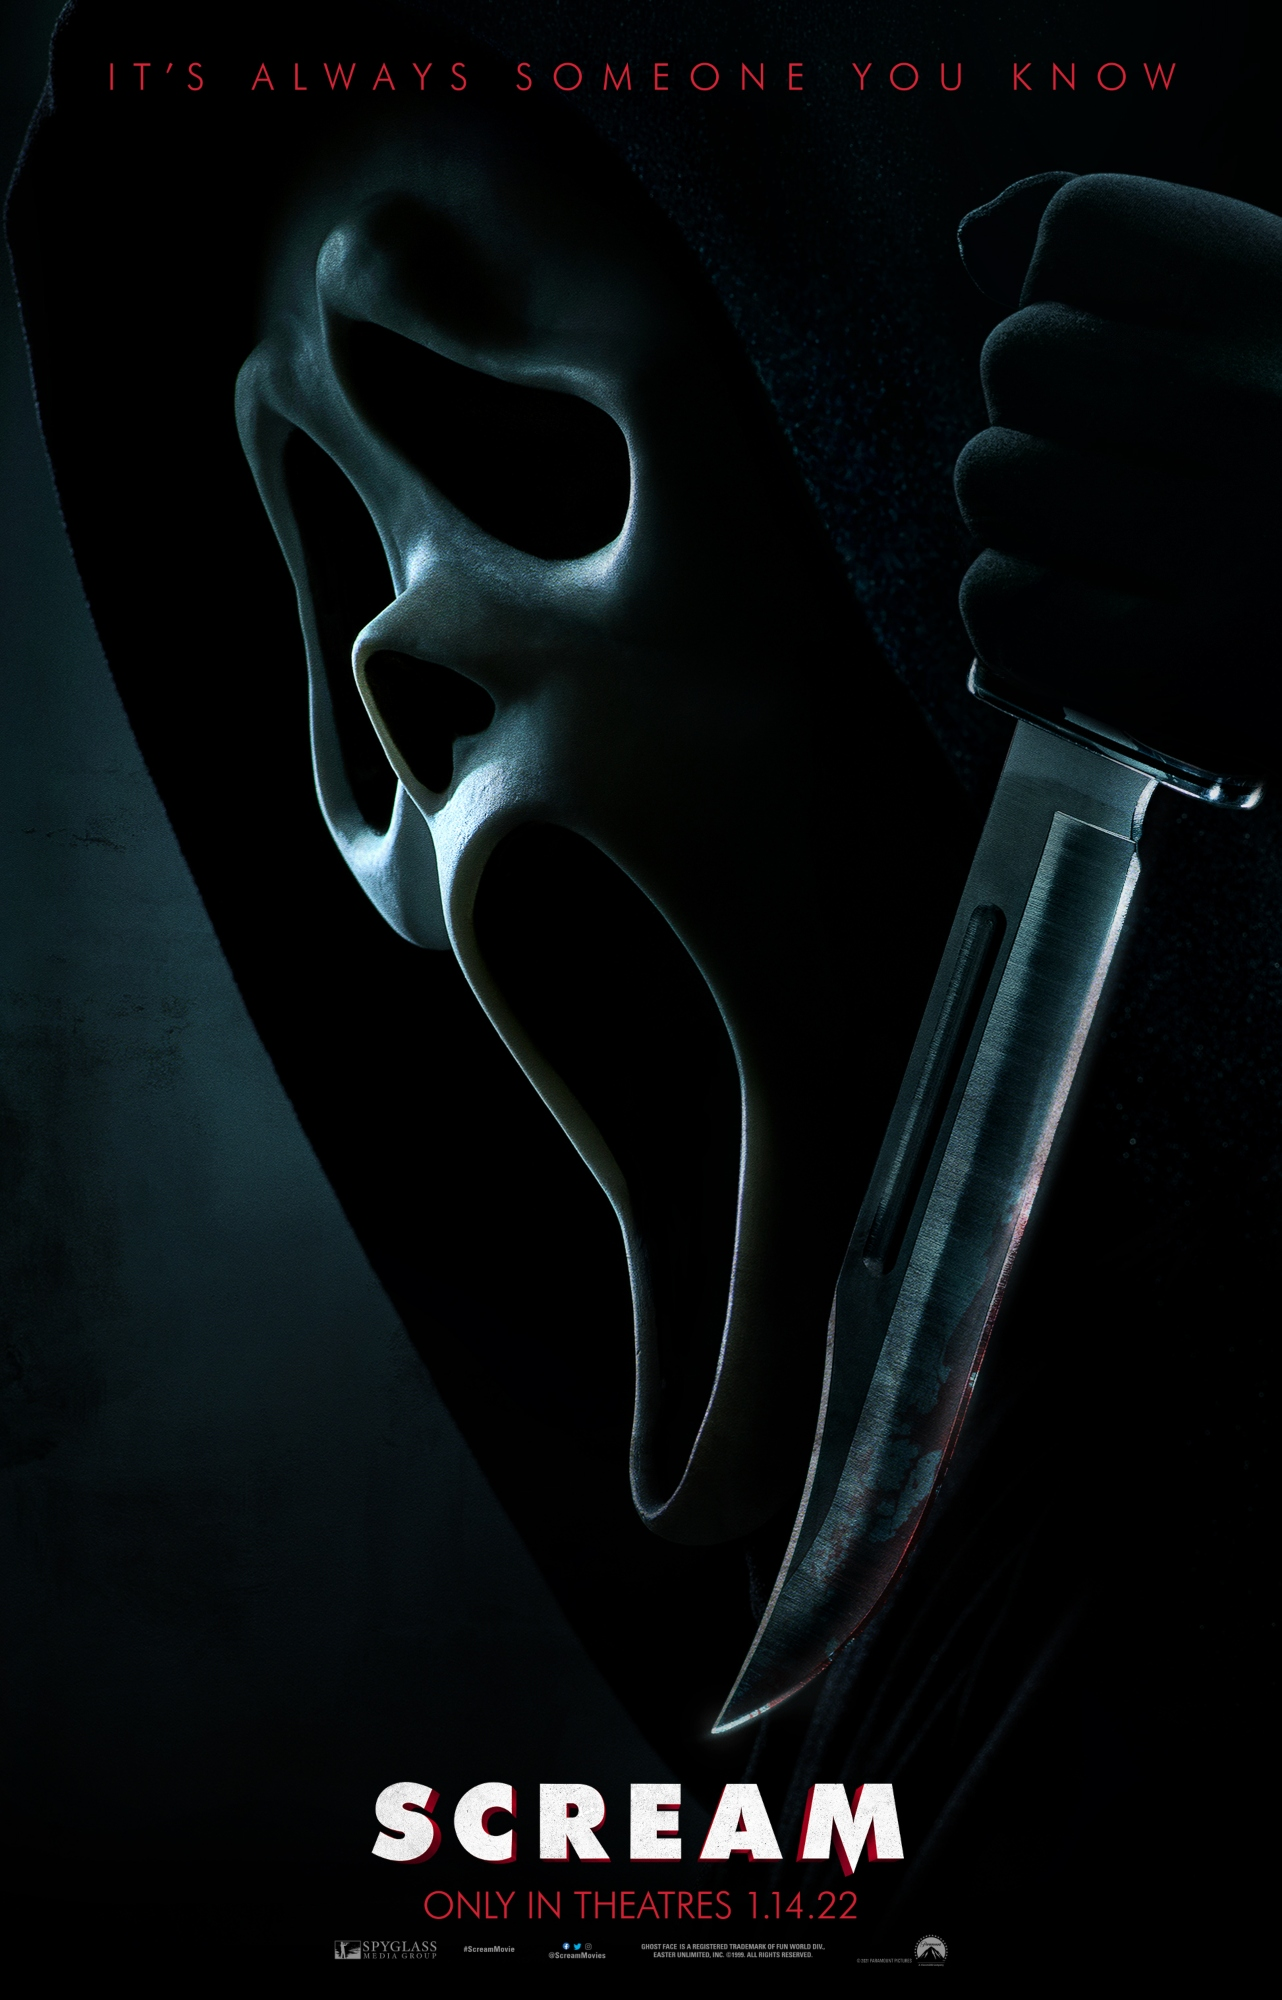 Scream 5 poster featuring a masked cast member as Ghostface